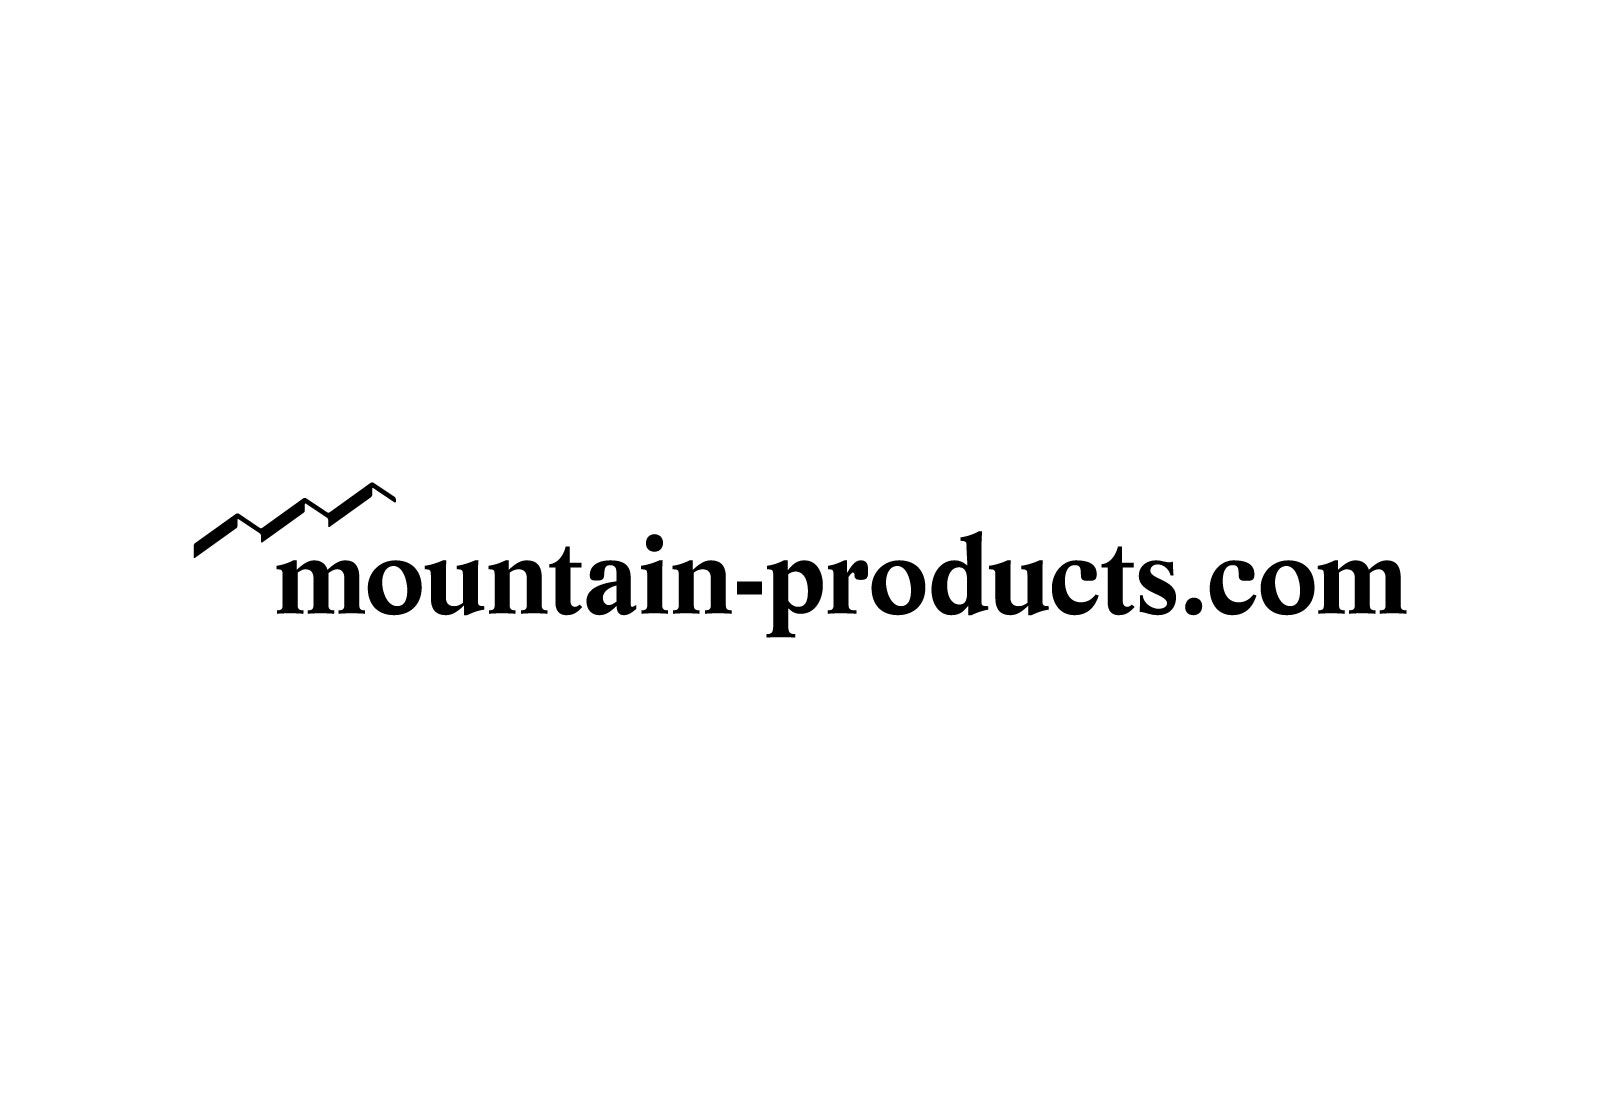 mountain-products.com